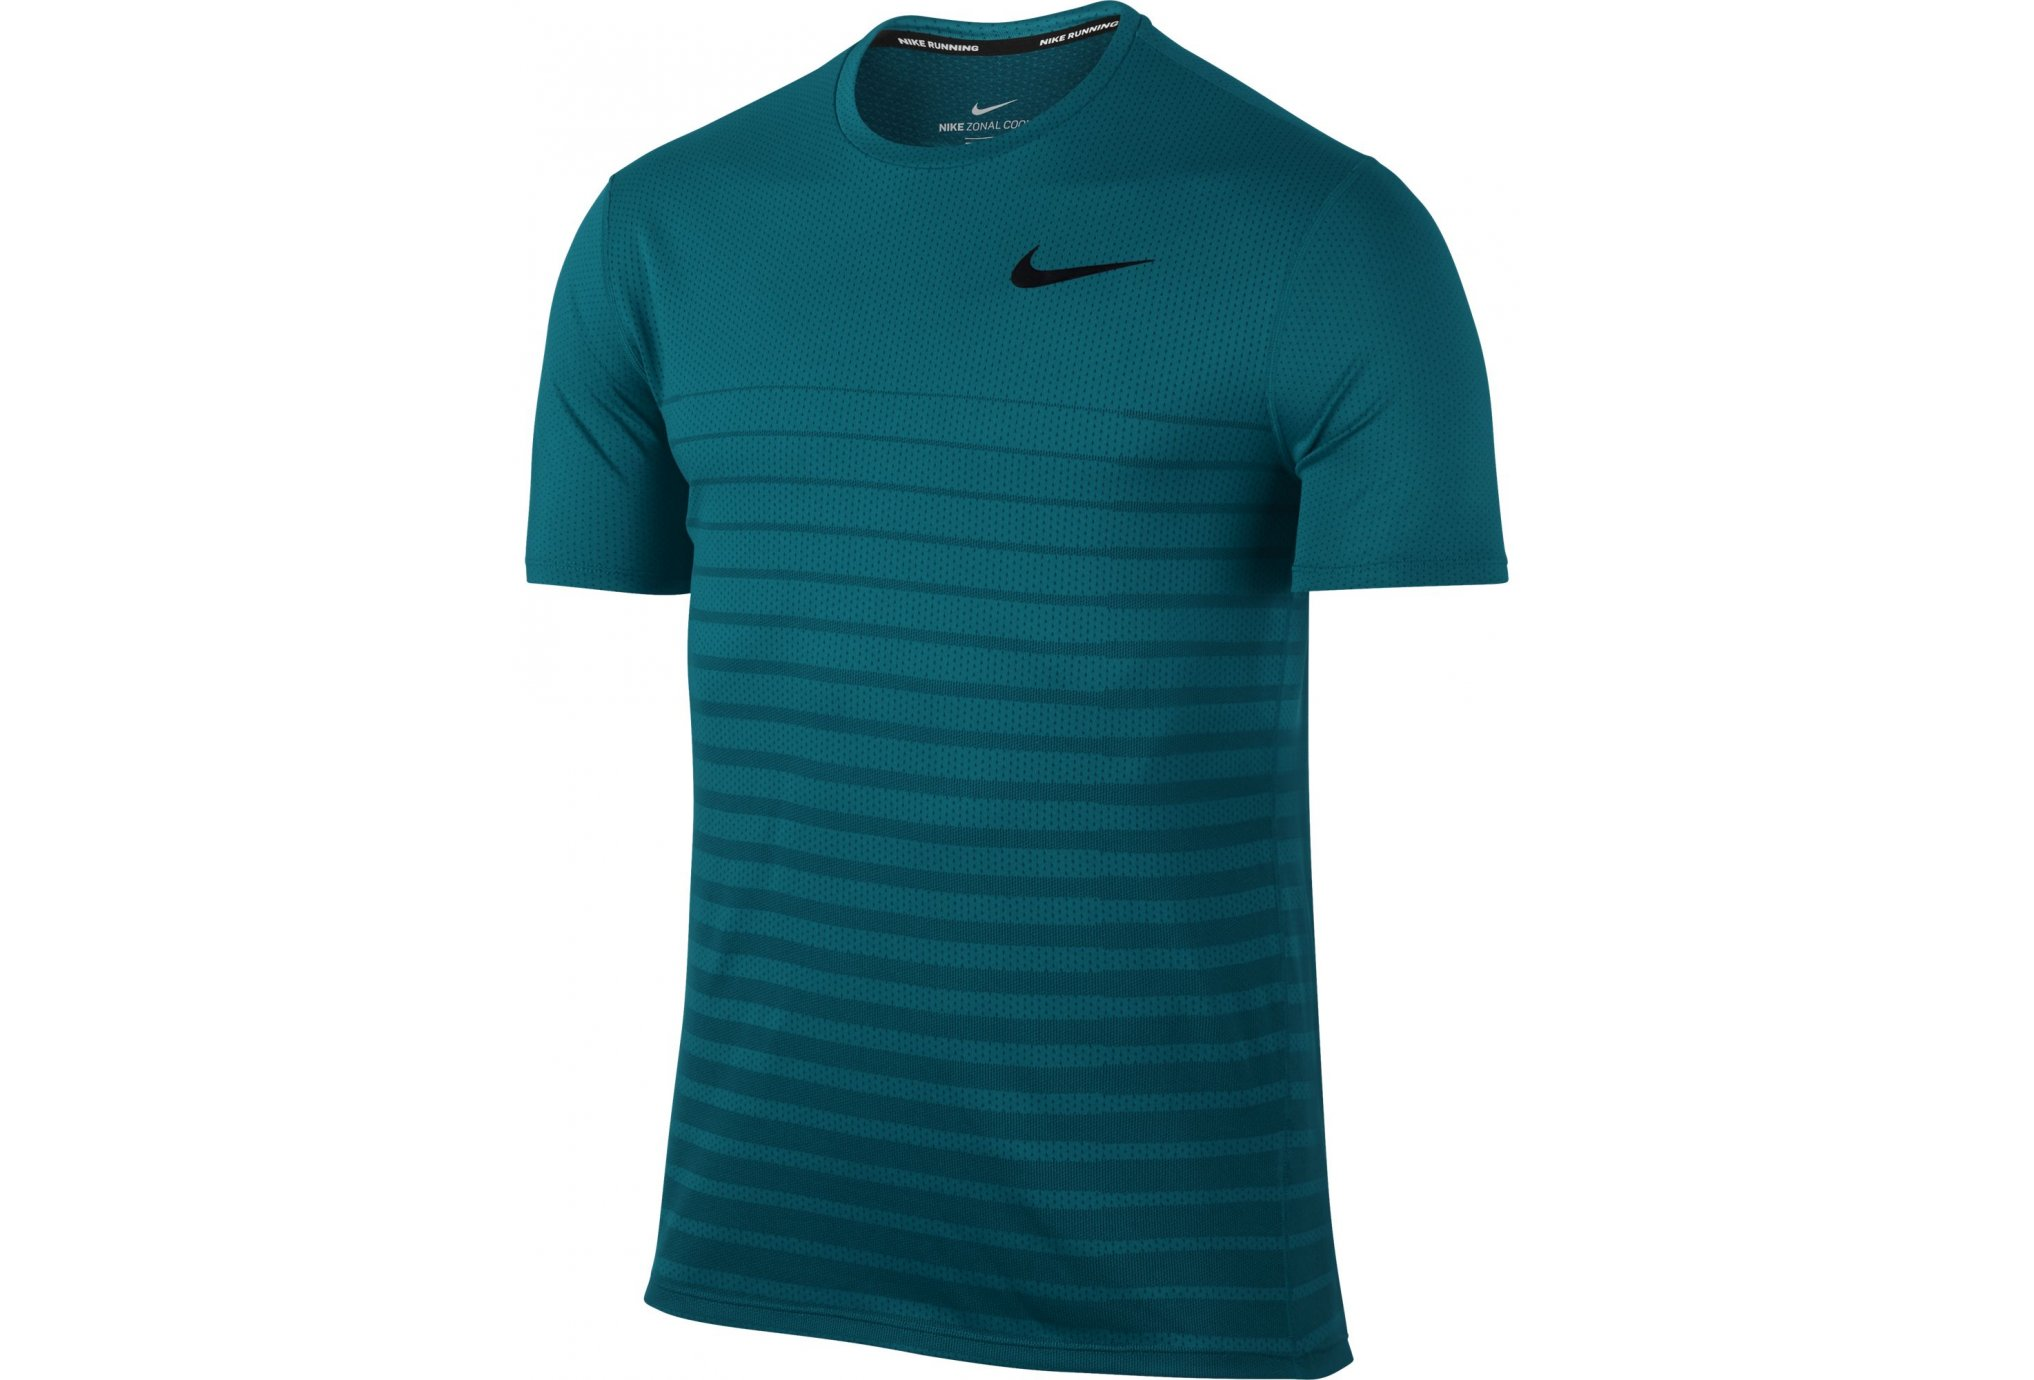 Nike Zonal Cooling Relay M vêtement running homme